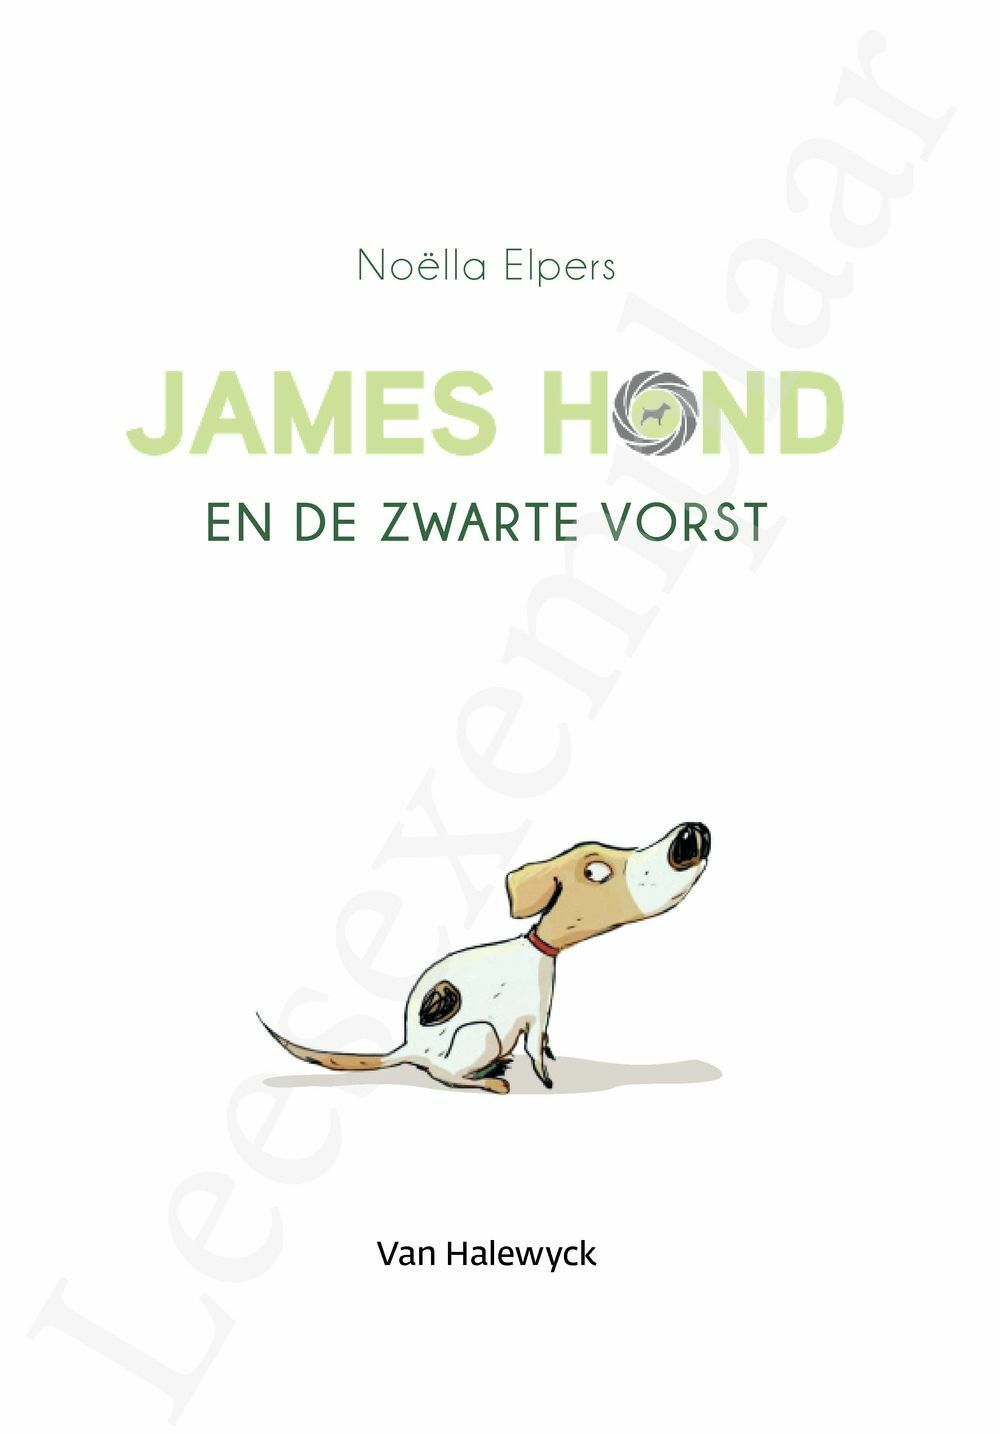 Preview: James Hond en de zwarte vorst